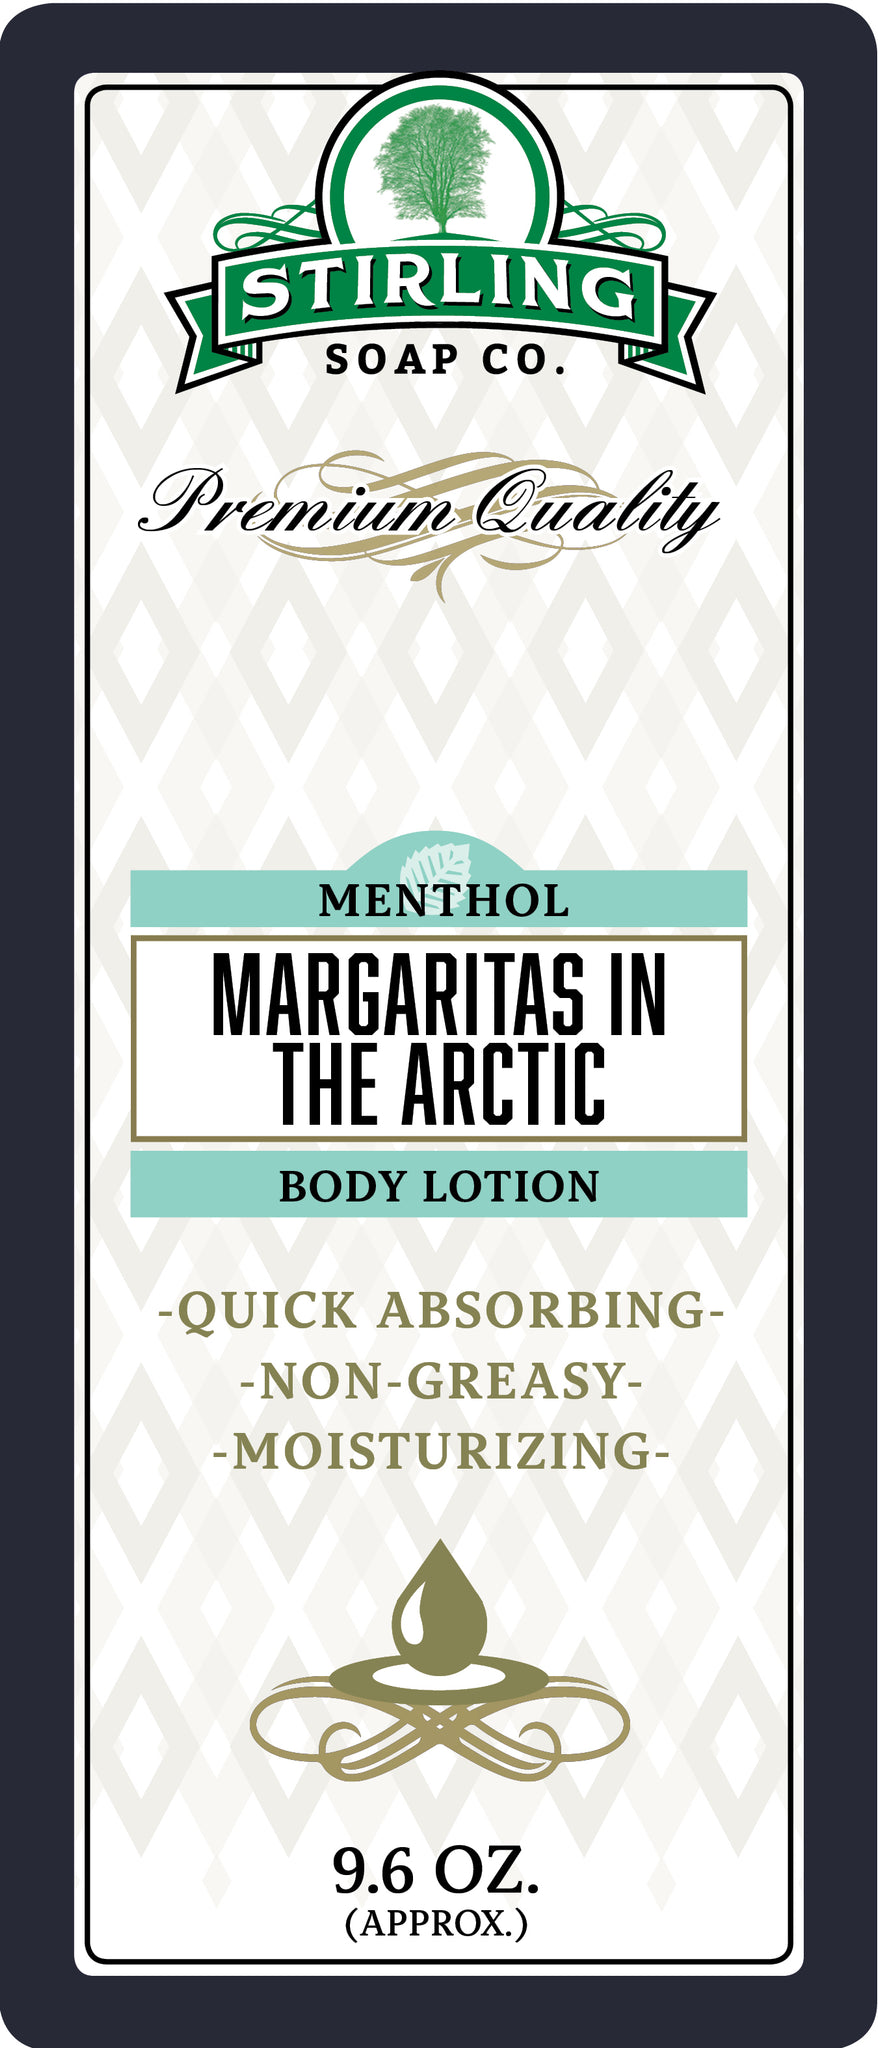 Margaritas in the Arctic - Body Lotion